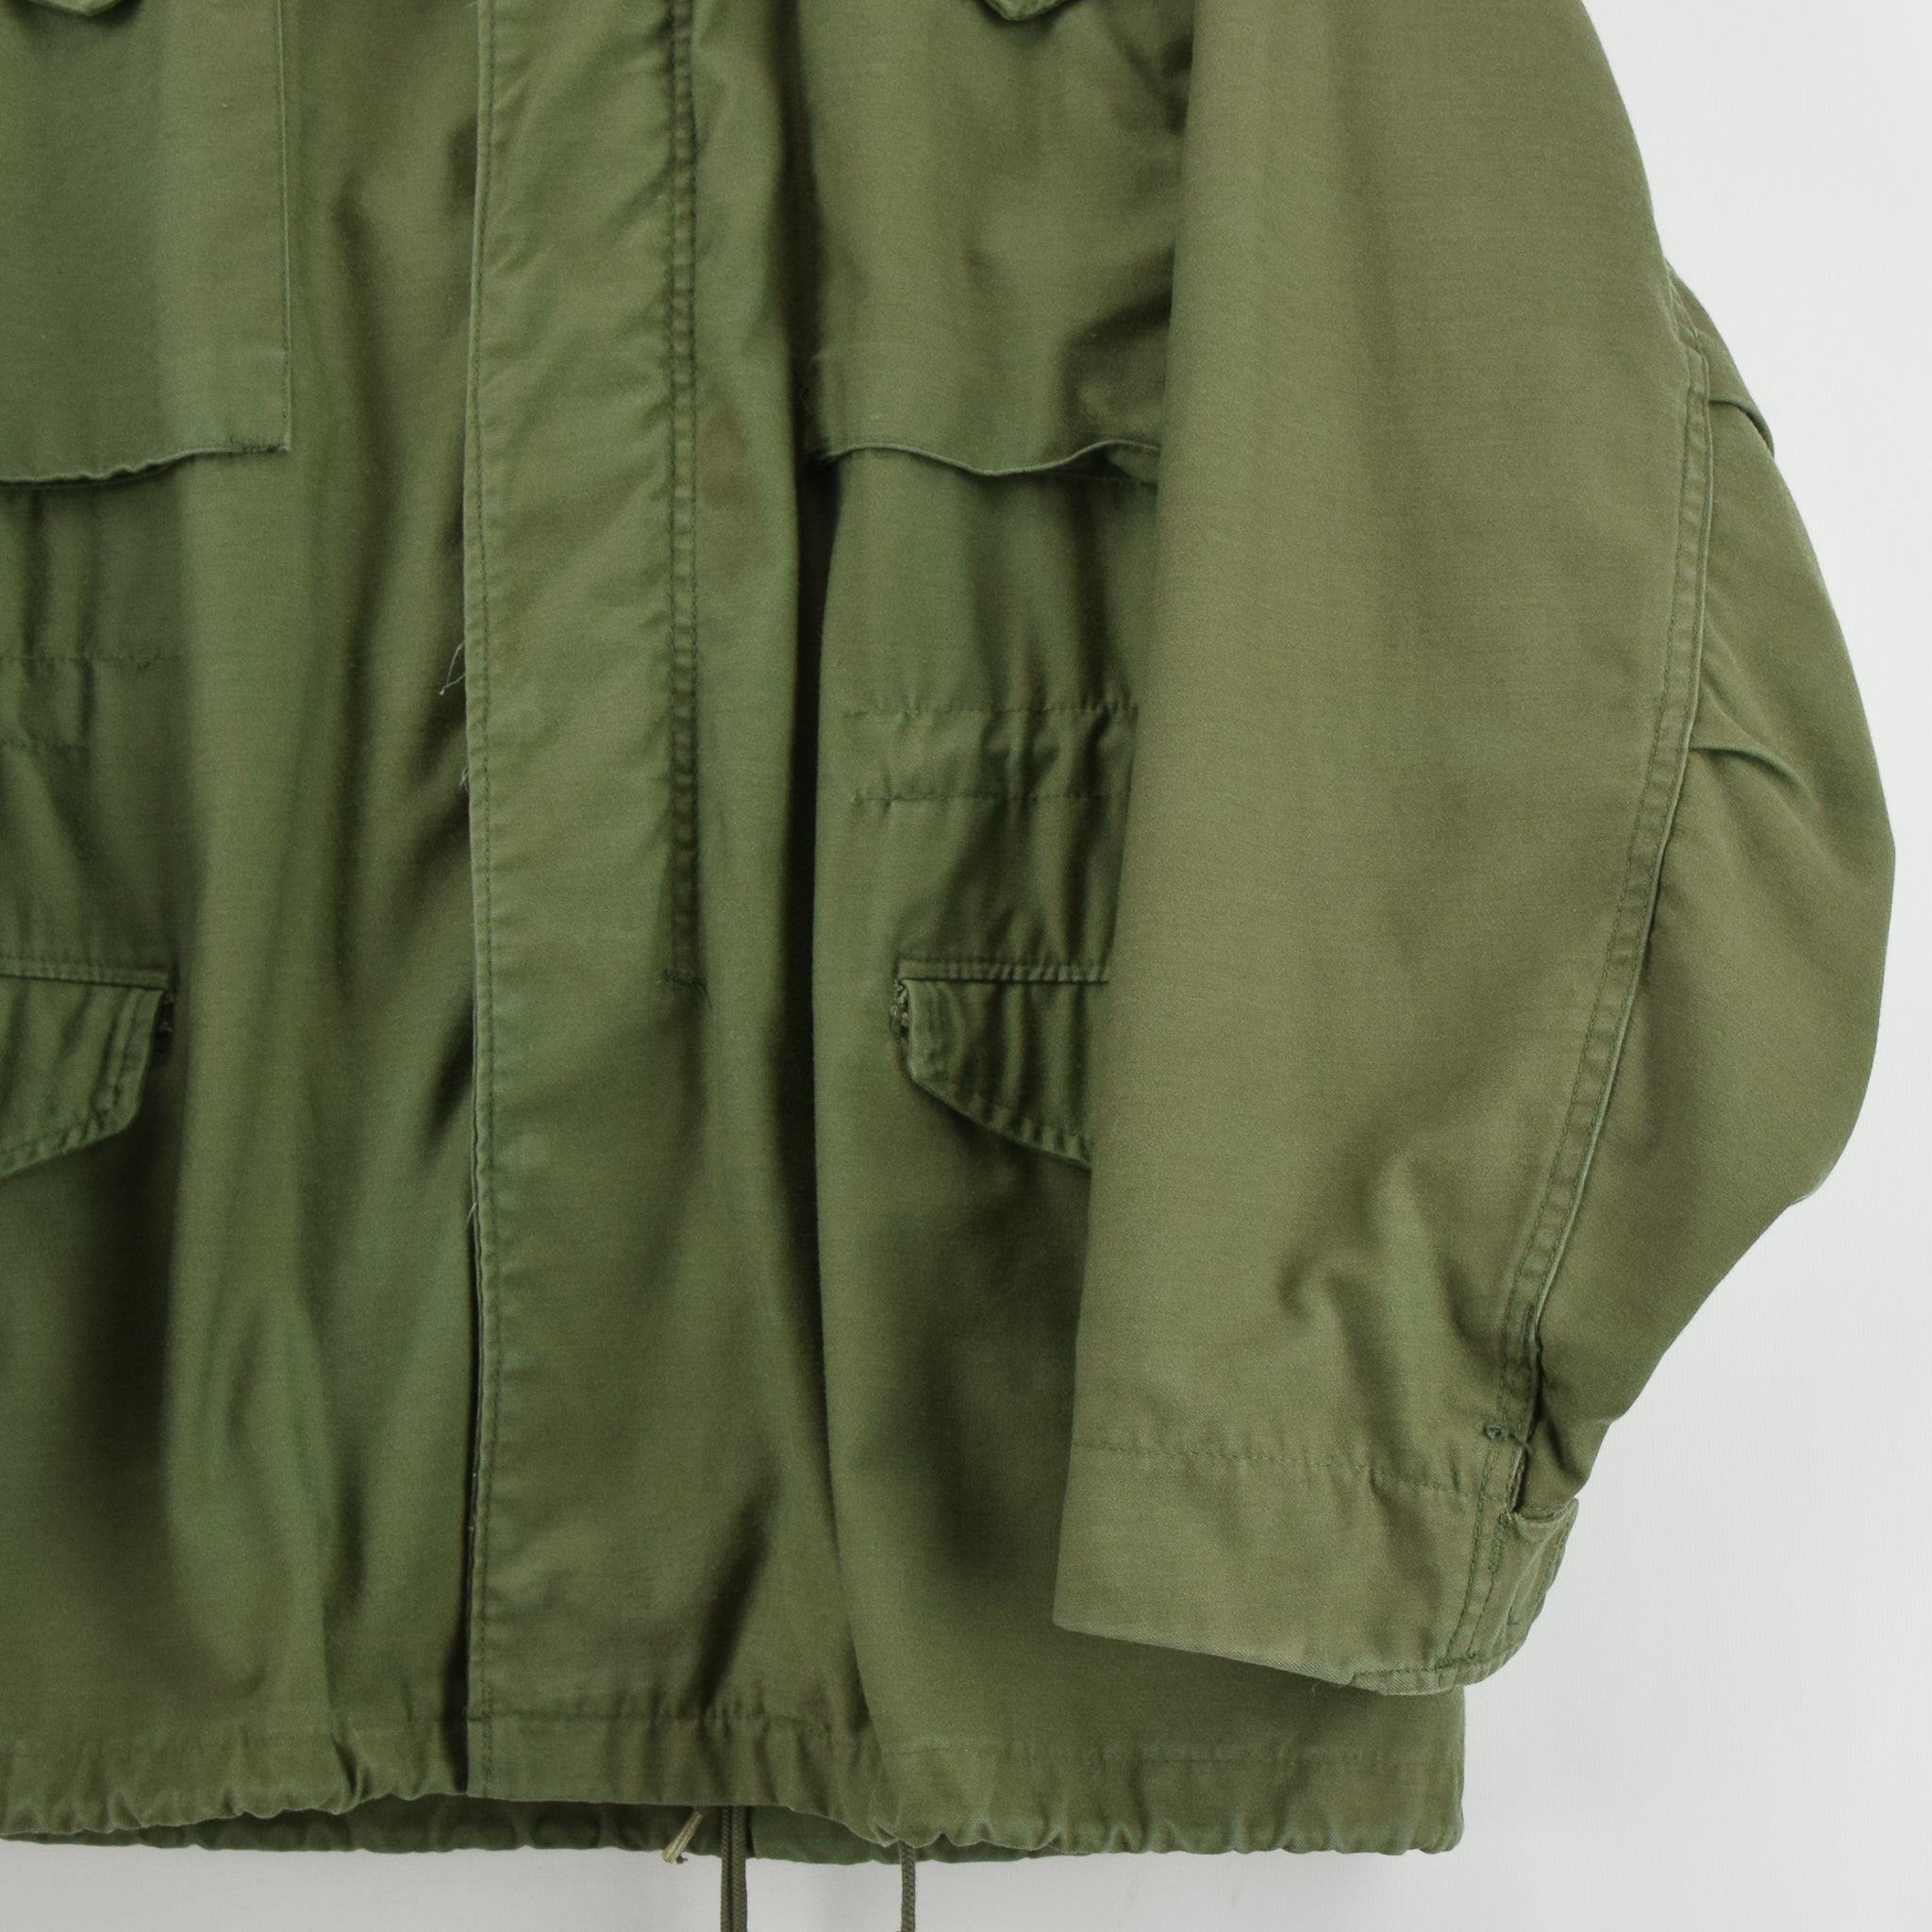 Vintage 80s M-65 Man's Cold Weather Field Military Army Jacket M Reg front hem